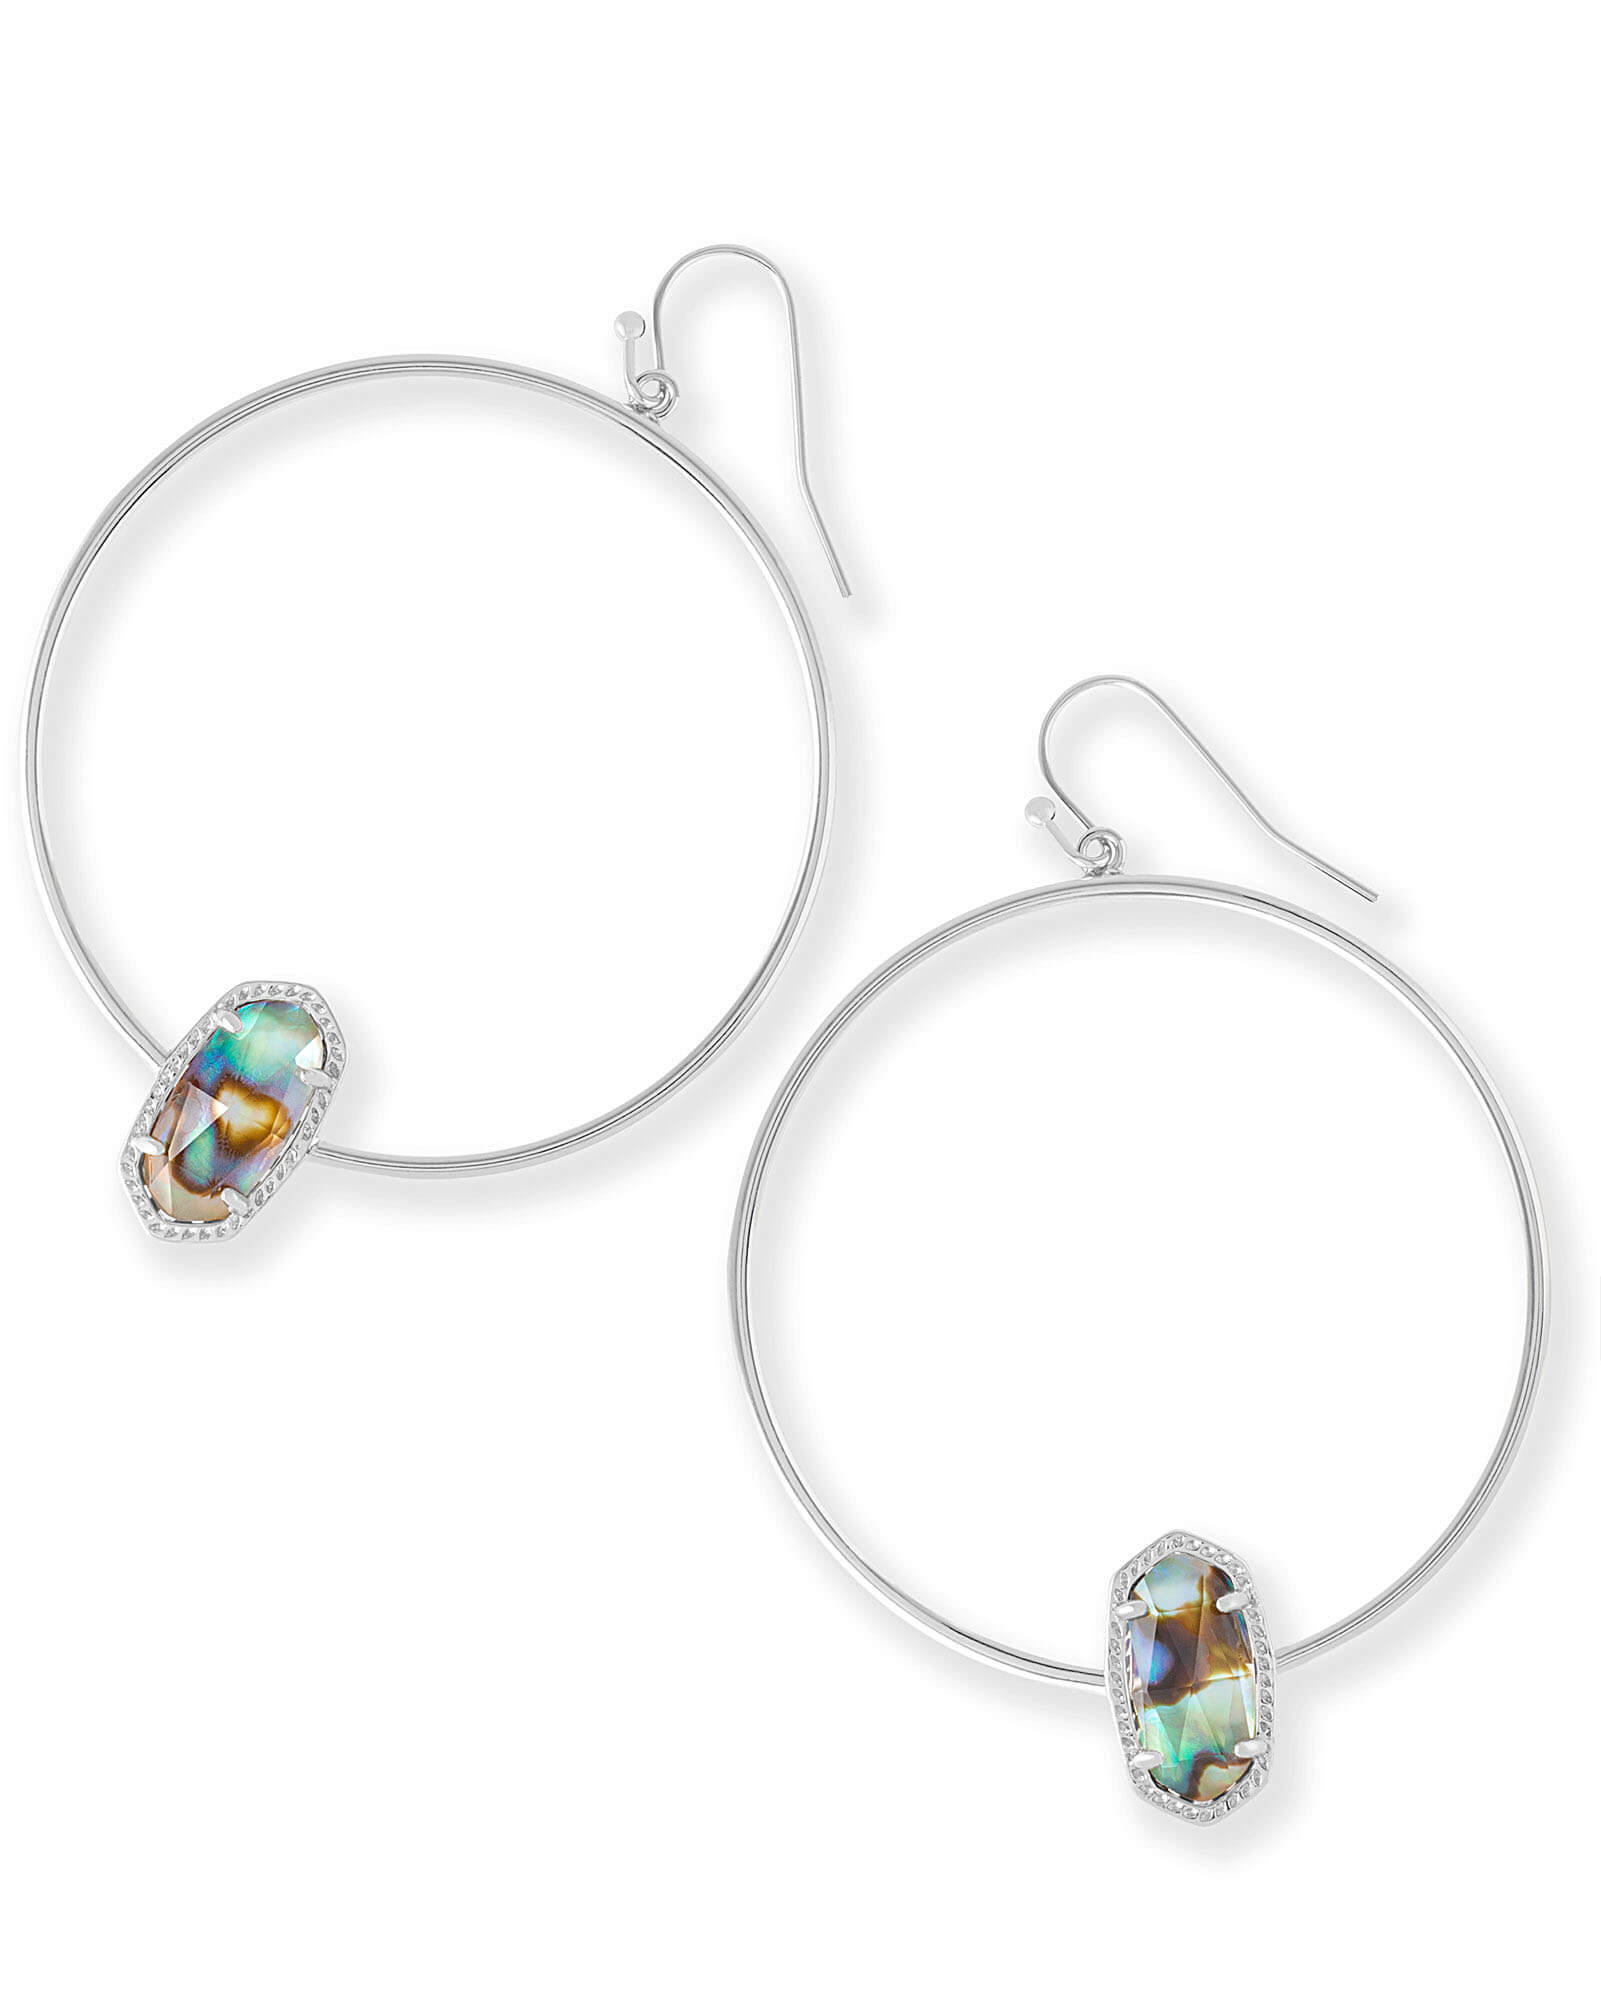 Elora Silver Hoop Earrings in Abalone Shell